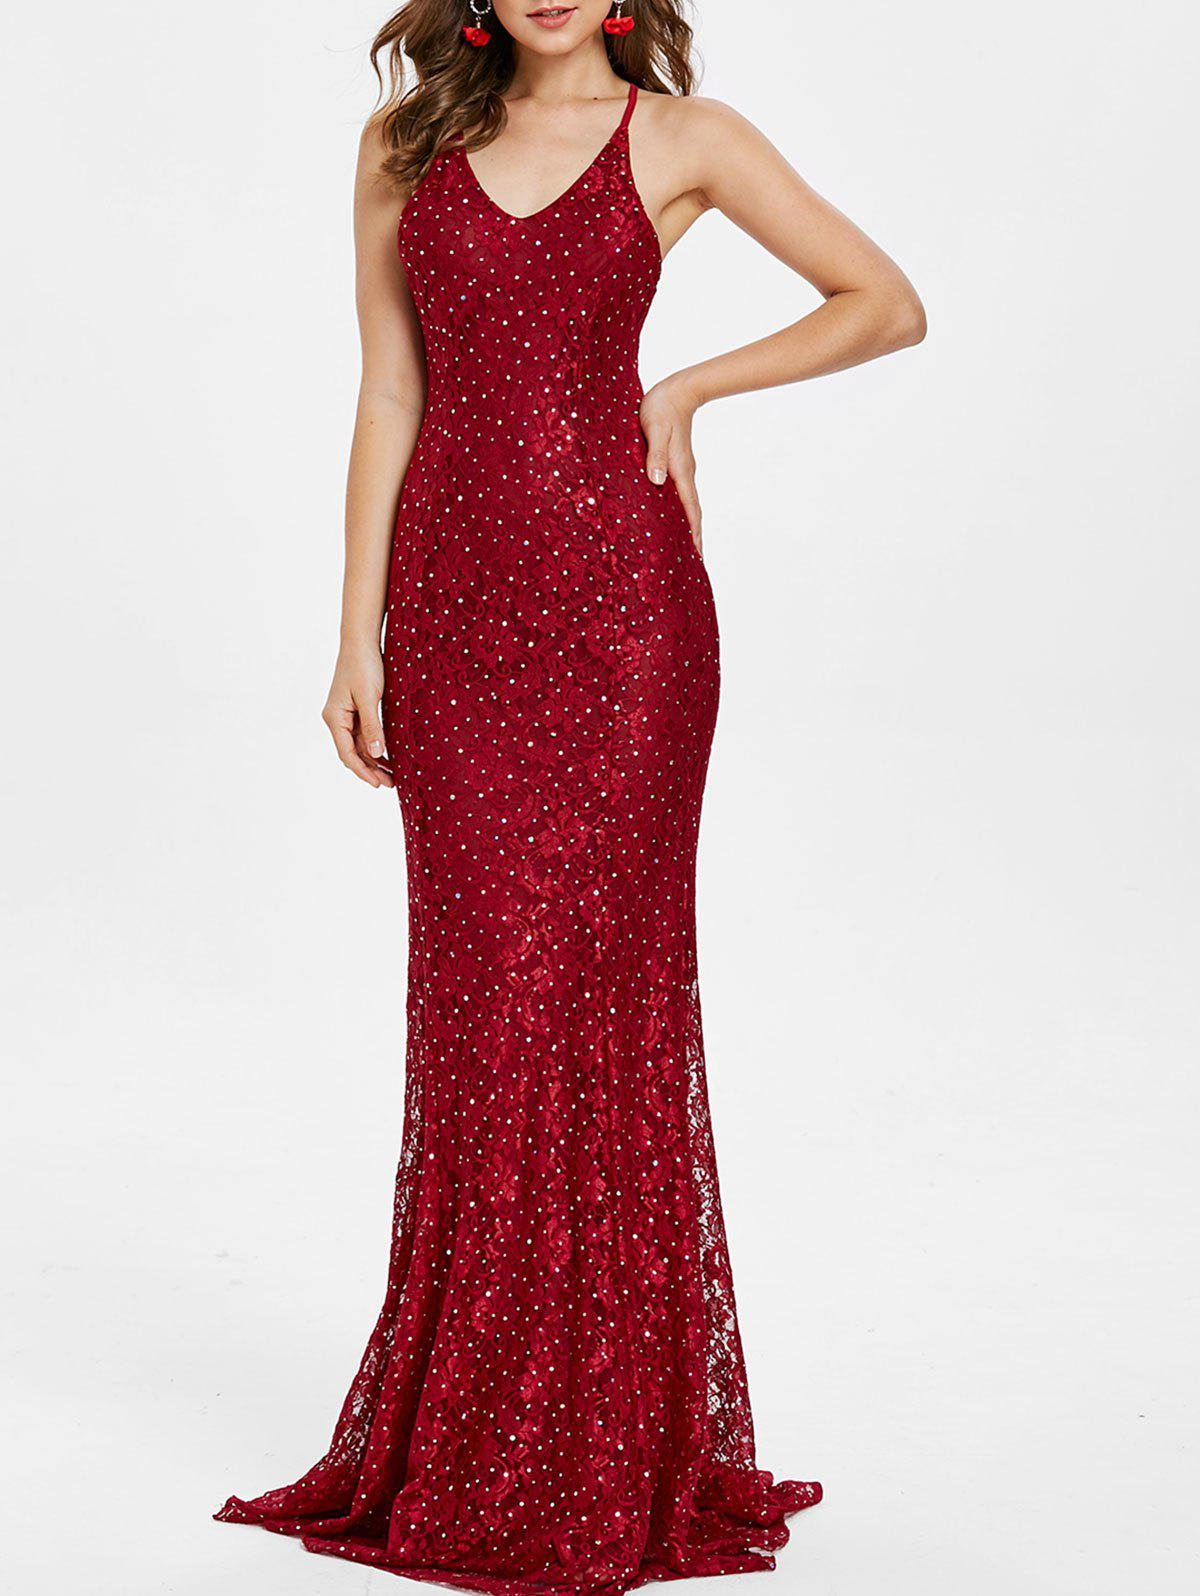 Store Backless Sequins Maxi Party Dress